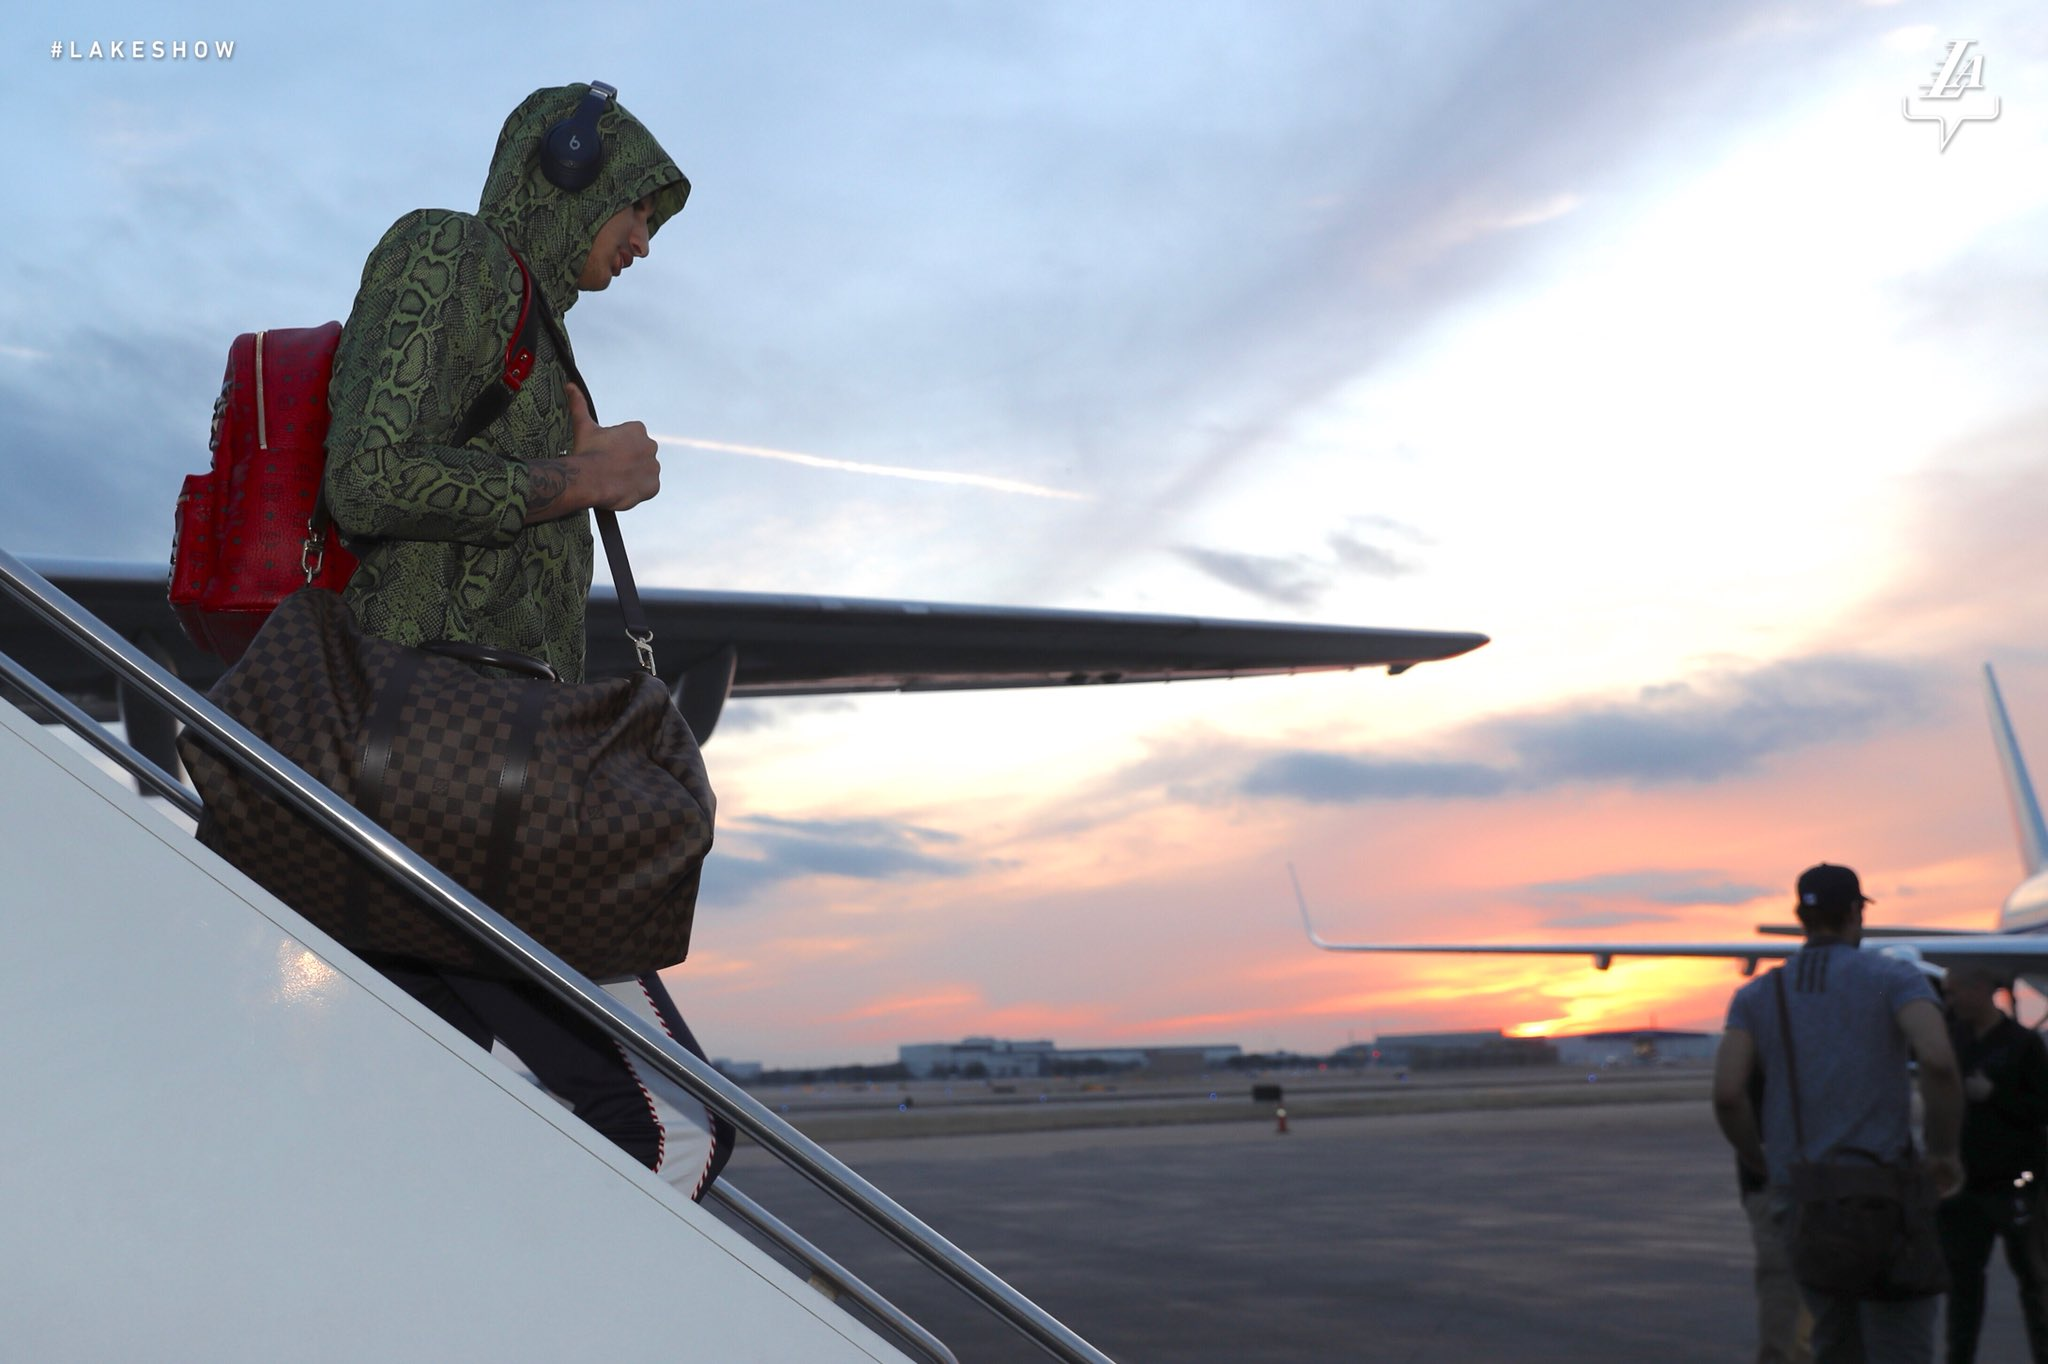 �� Sunset arrival in Dallas #LakeShow https://t.co/XkixfmQZx9